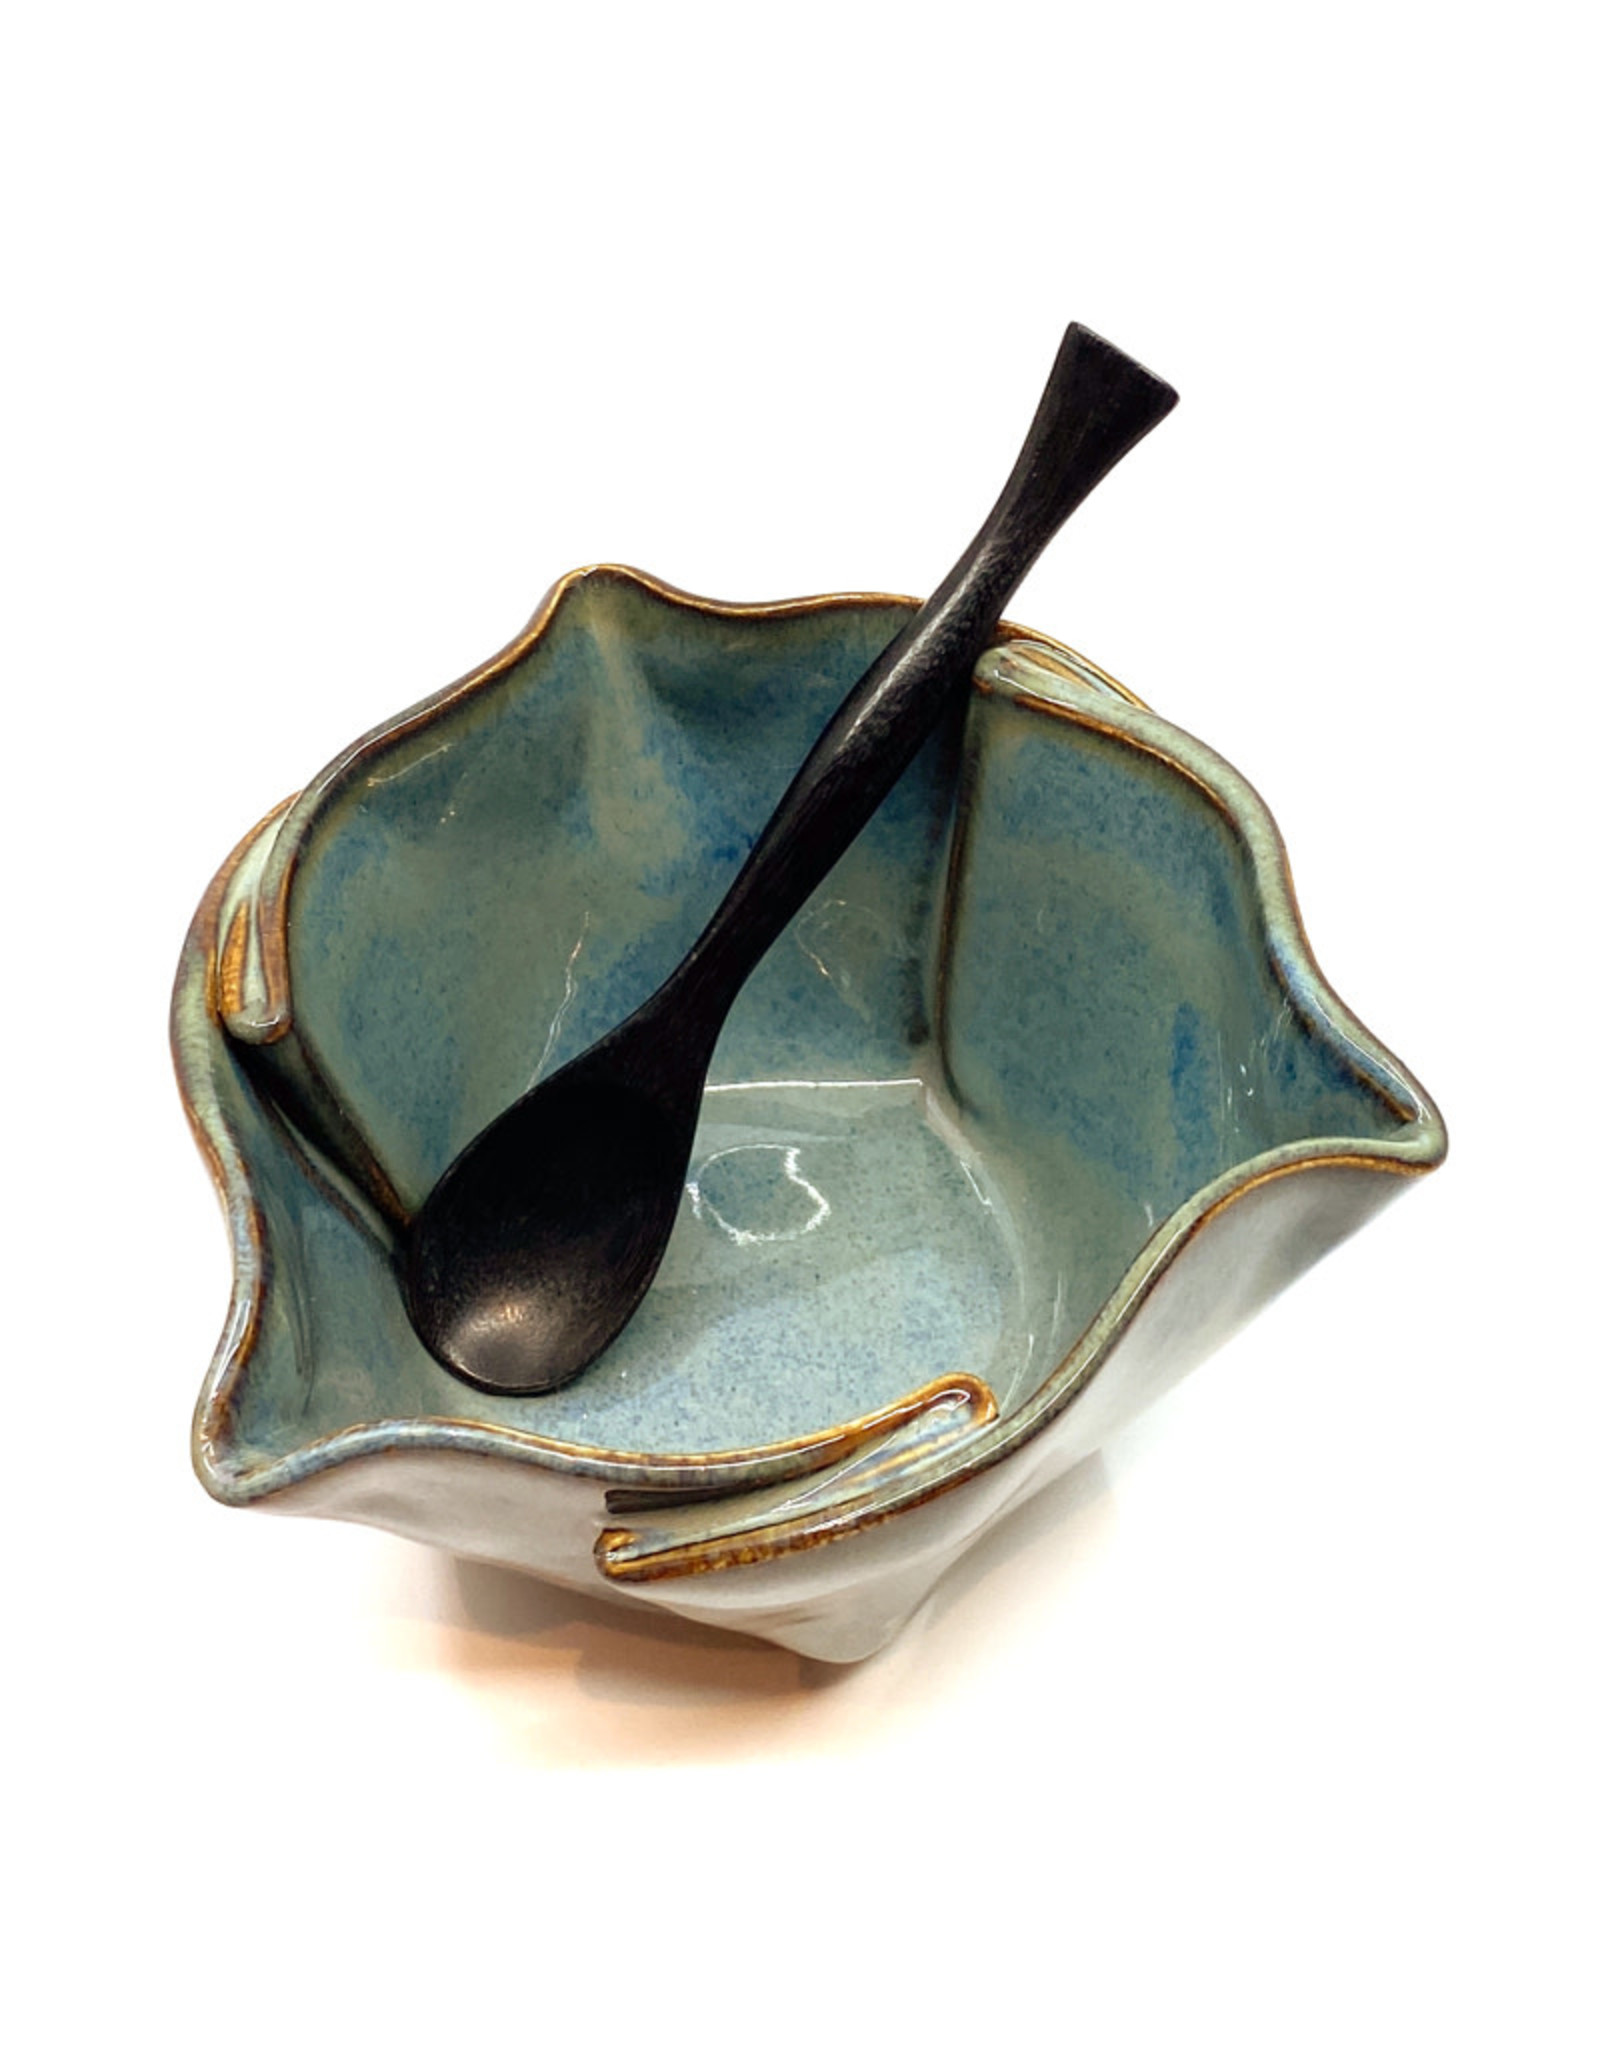 HILBORN POTTERY BLUE MEDLEY MULTI-PURPOSE DISH WITH SPOON